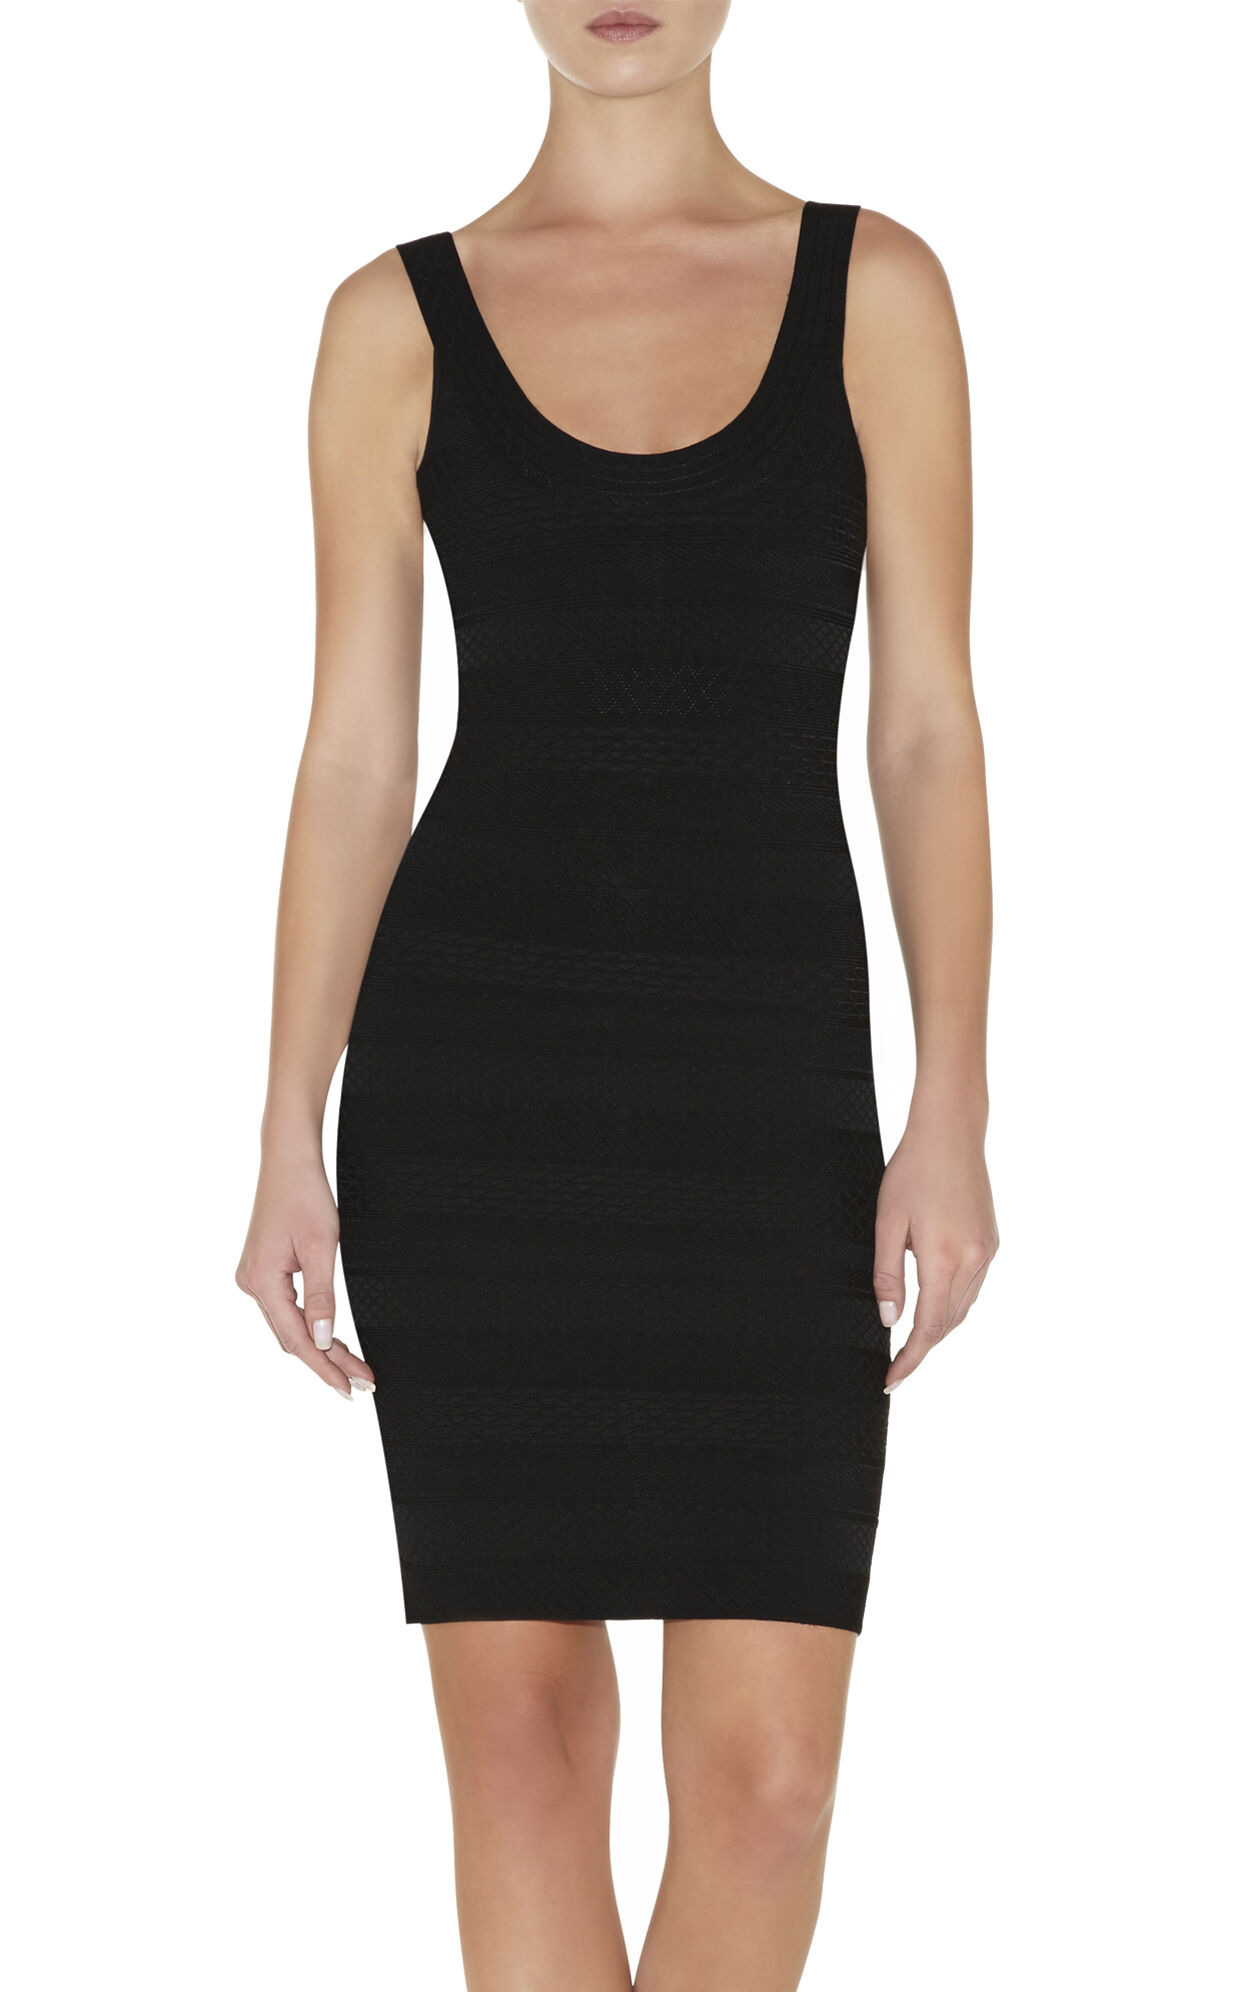 Lilykate Embossed-Texture Bandage Dress